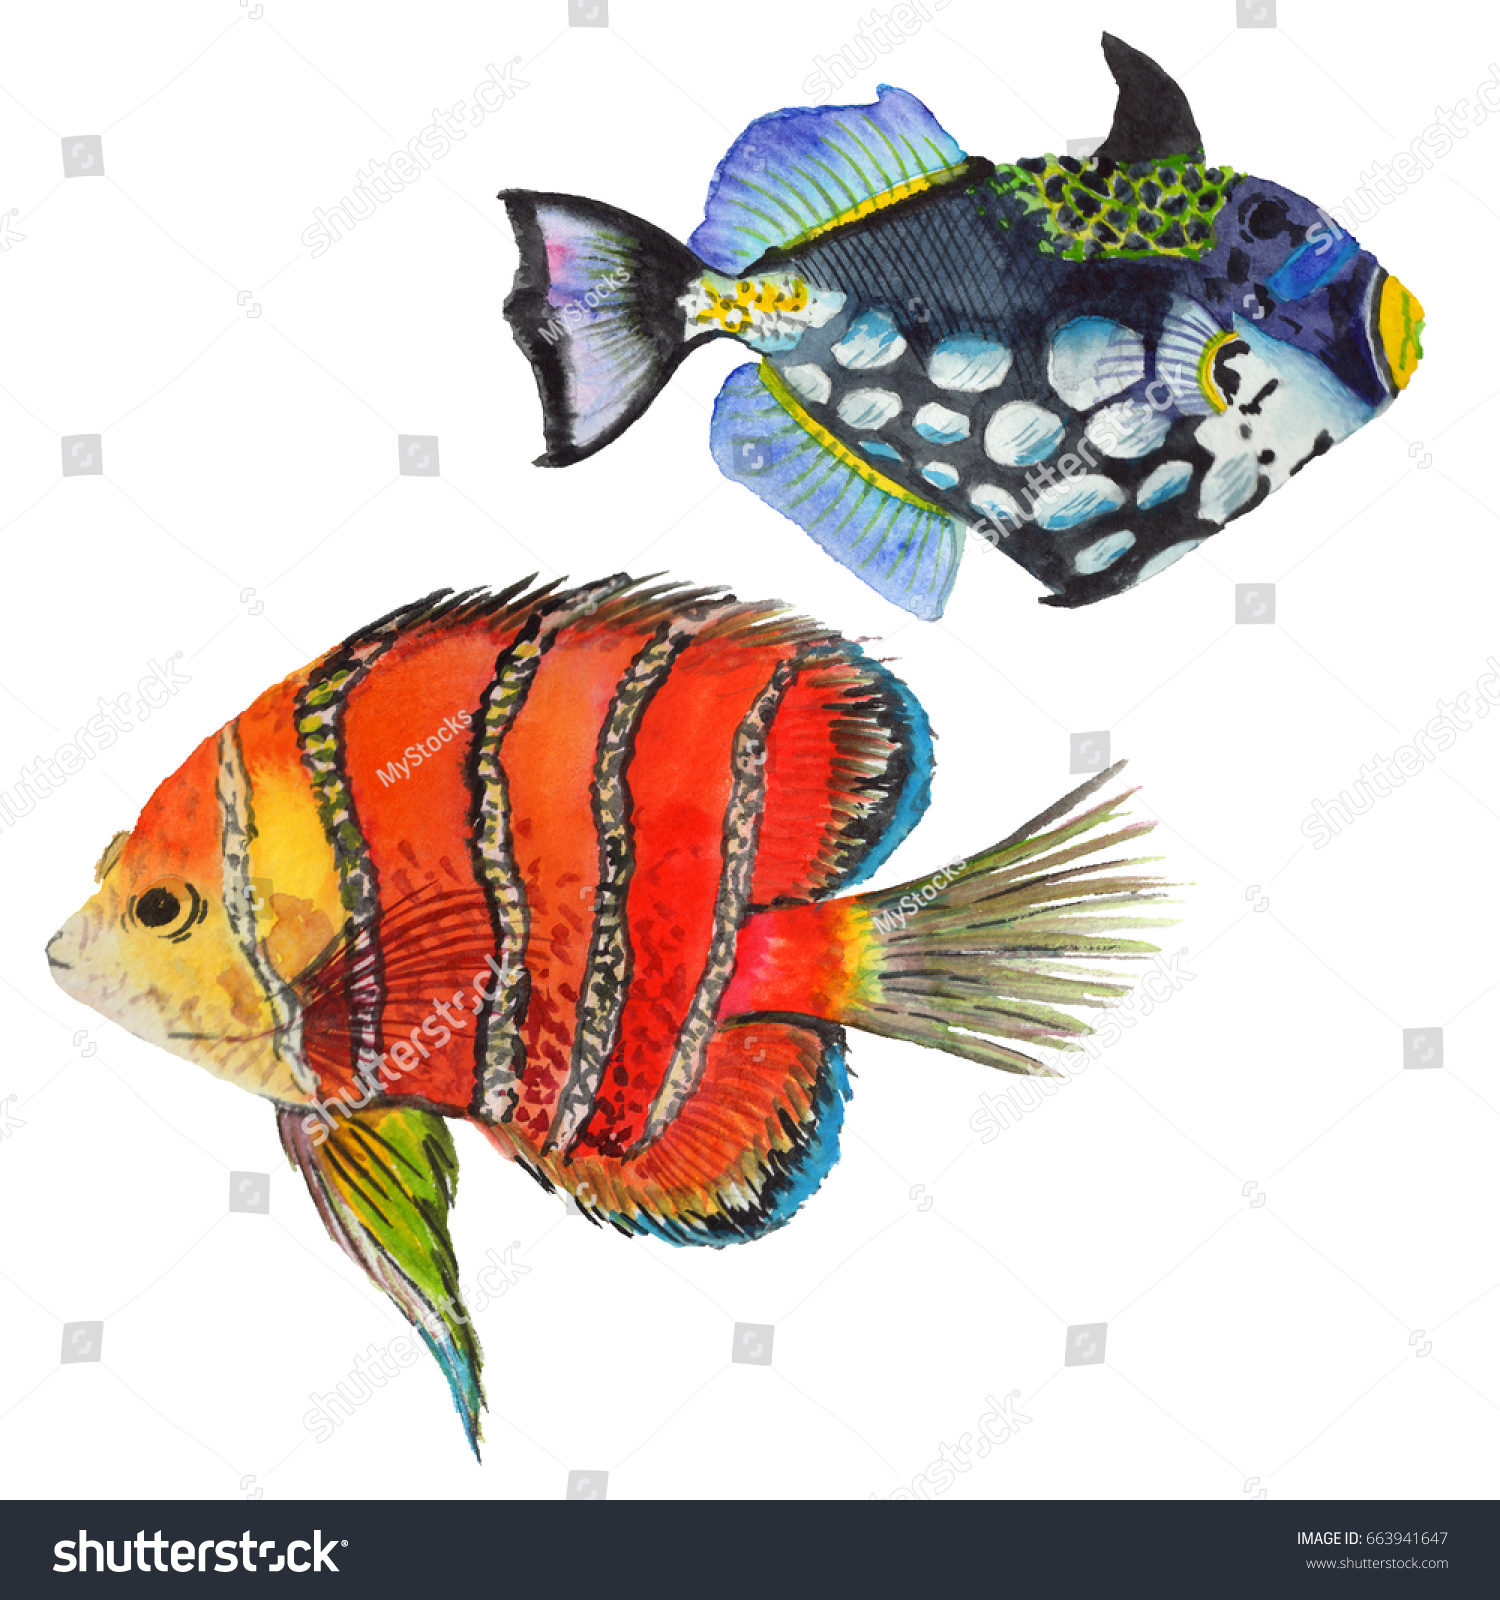 Watercolor Aquatic Underwater Colorful Tropical Fish Stock ...